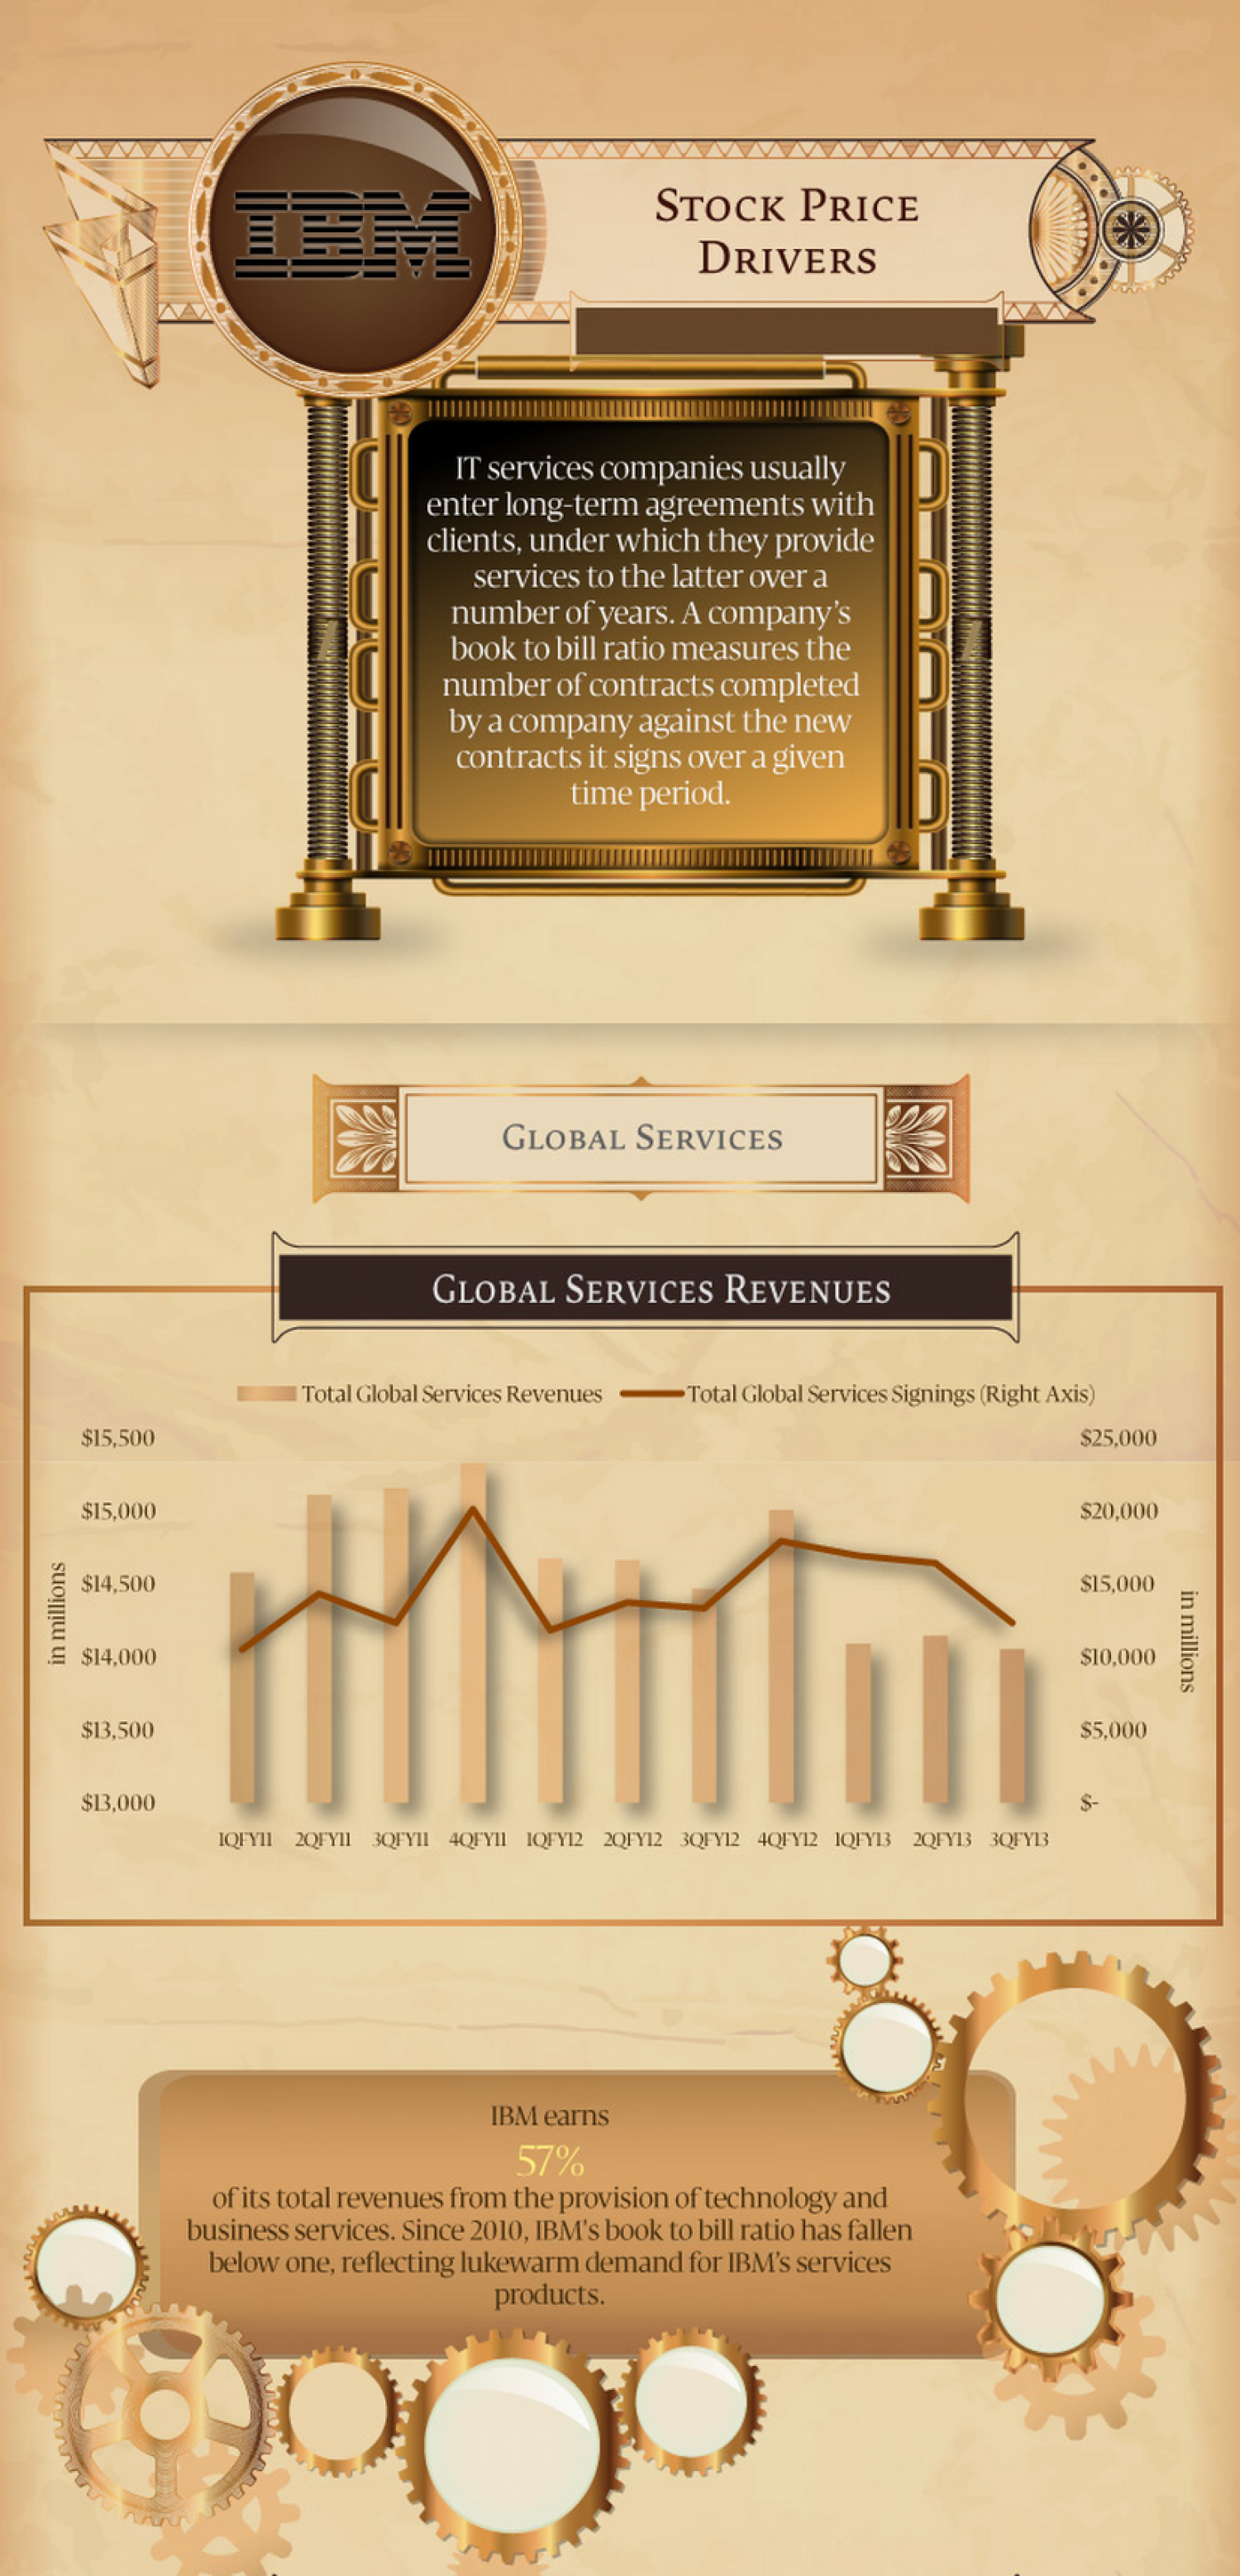 IBM Stock Price Drivers Infographic